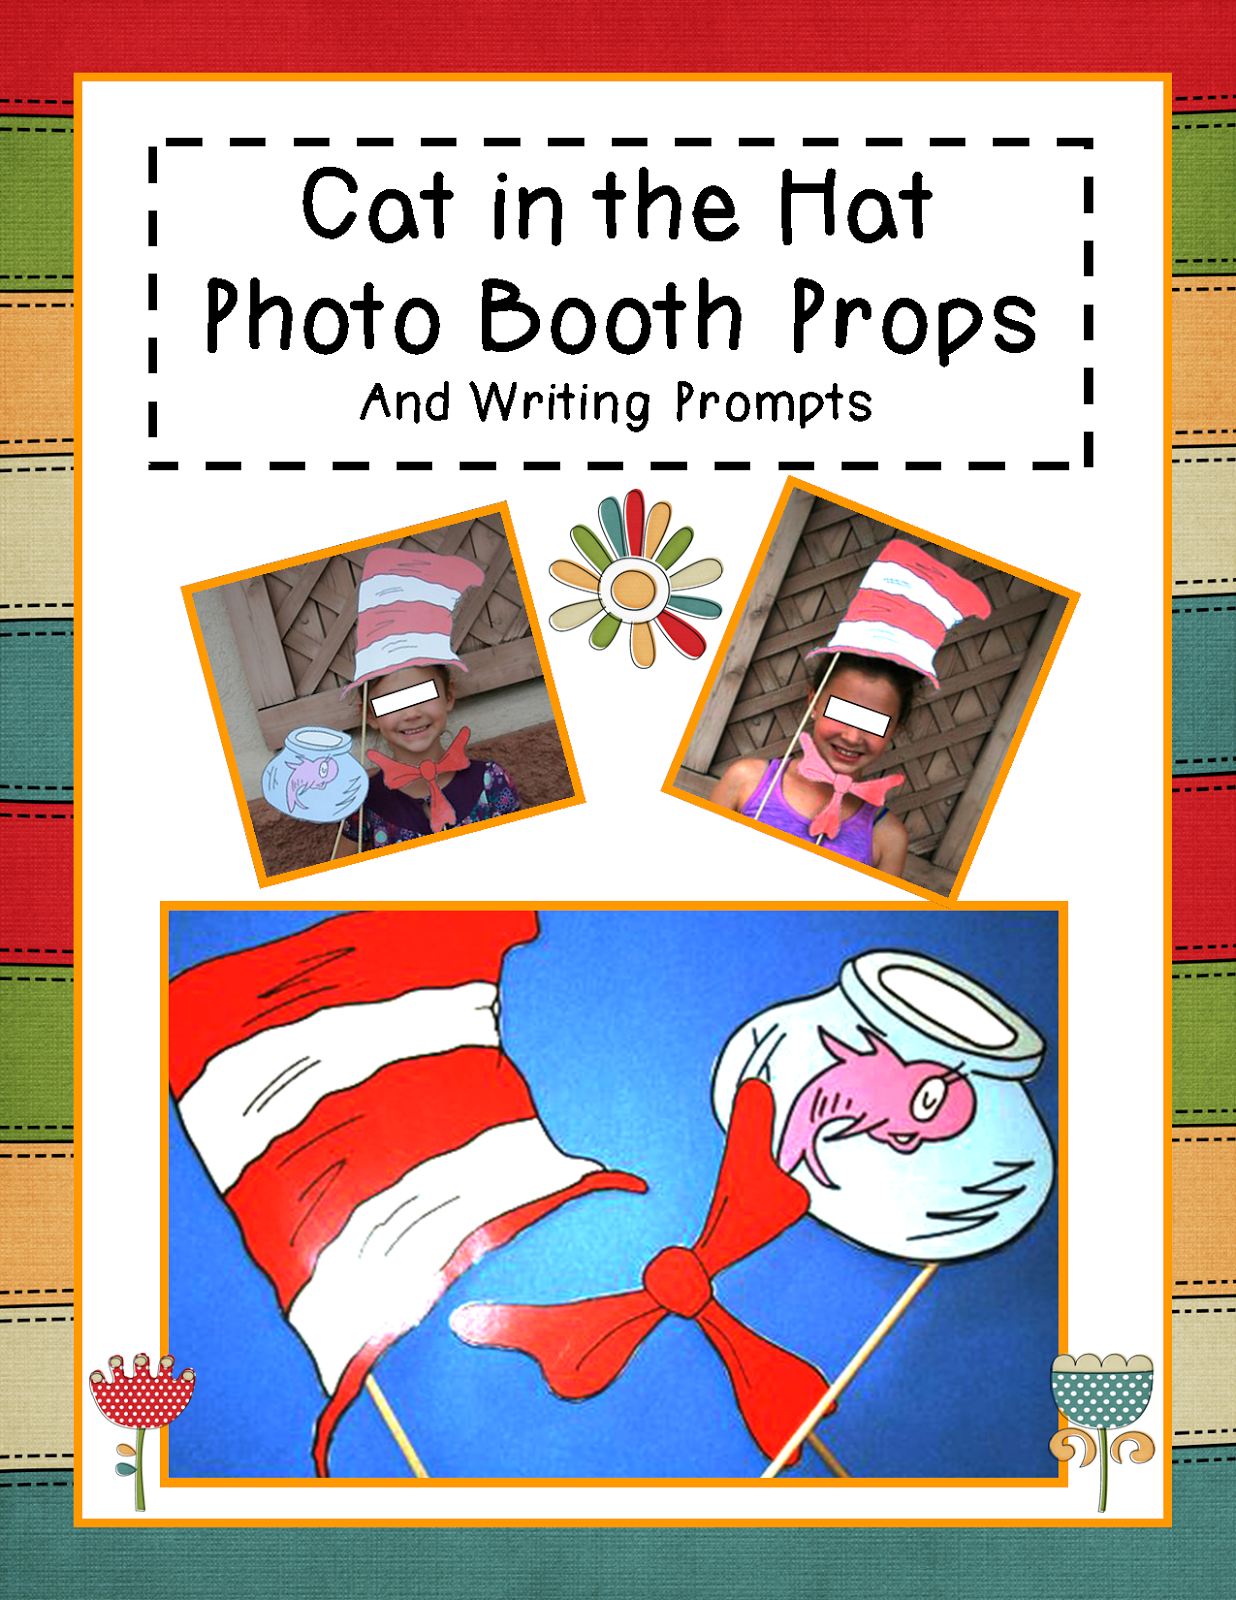 http://www.teacherspayteachers.com/Product/Happy-Birthday-Dr-Seuss-Photo-Booth-Props-and-Writing-Propmts-1130476